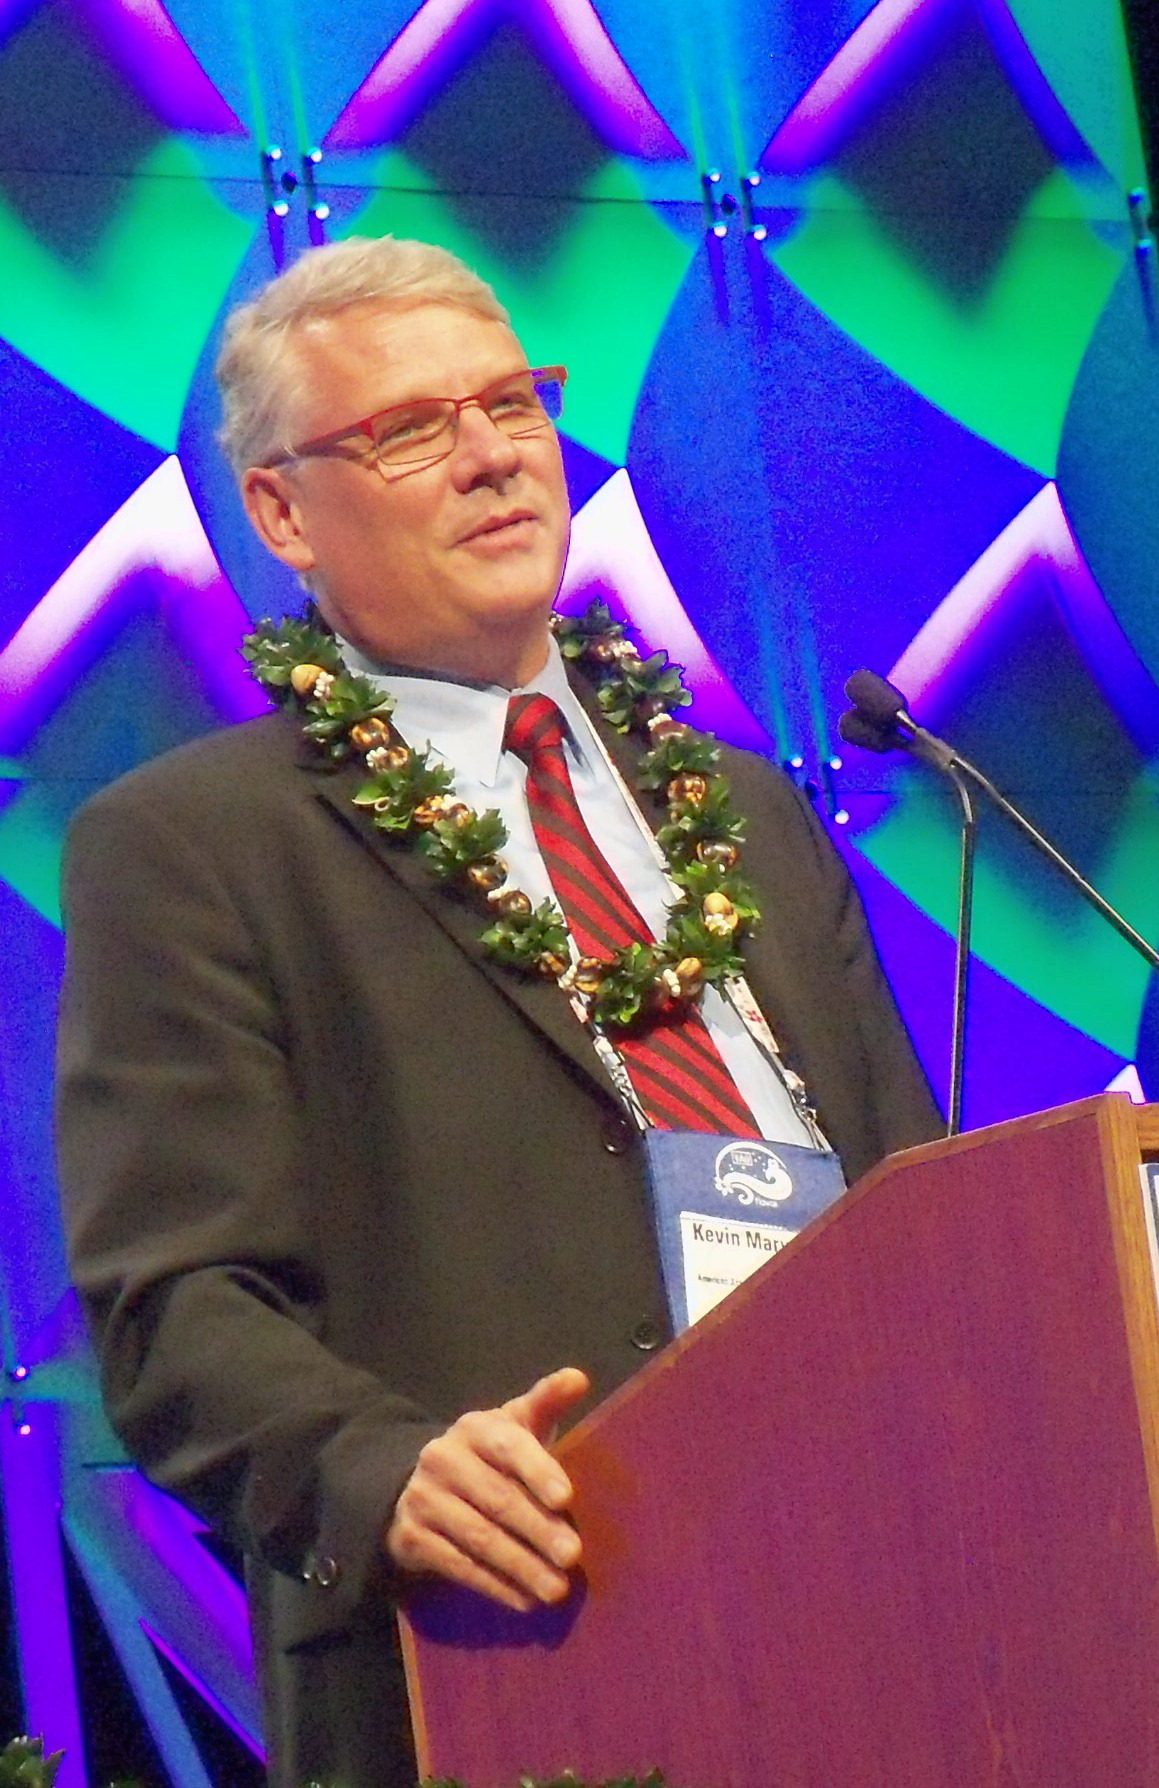 Kevin Marvel, AAS Executive Officer at the IAU Closing Ceremony